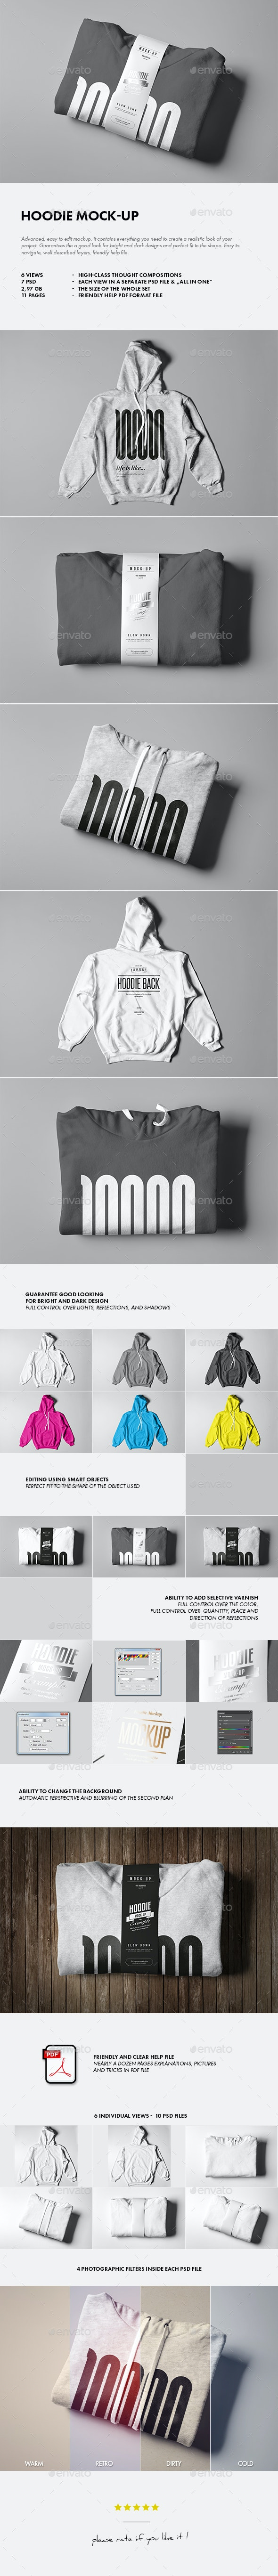 Hoodie Mock-up - Apparel Product Mock-Ups